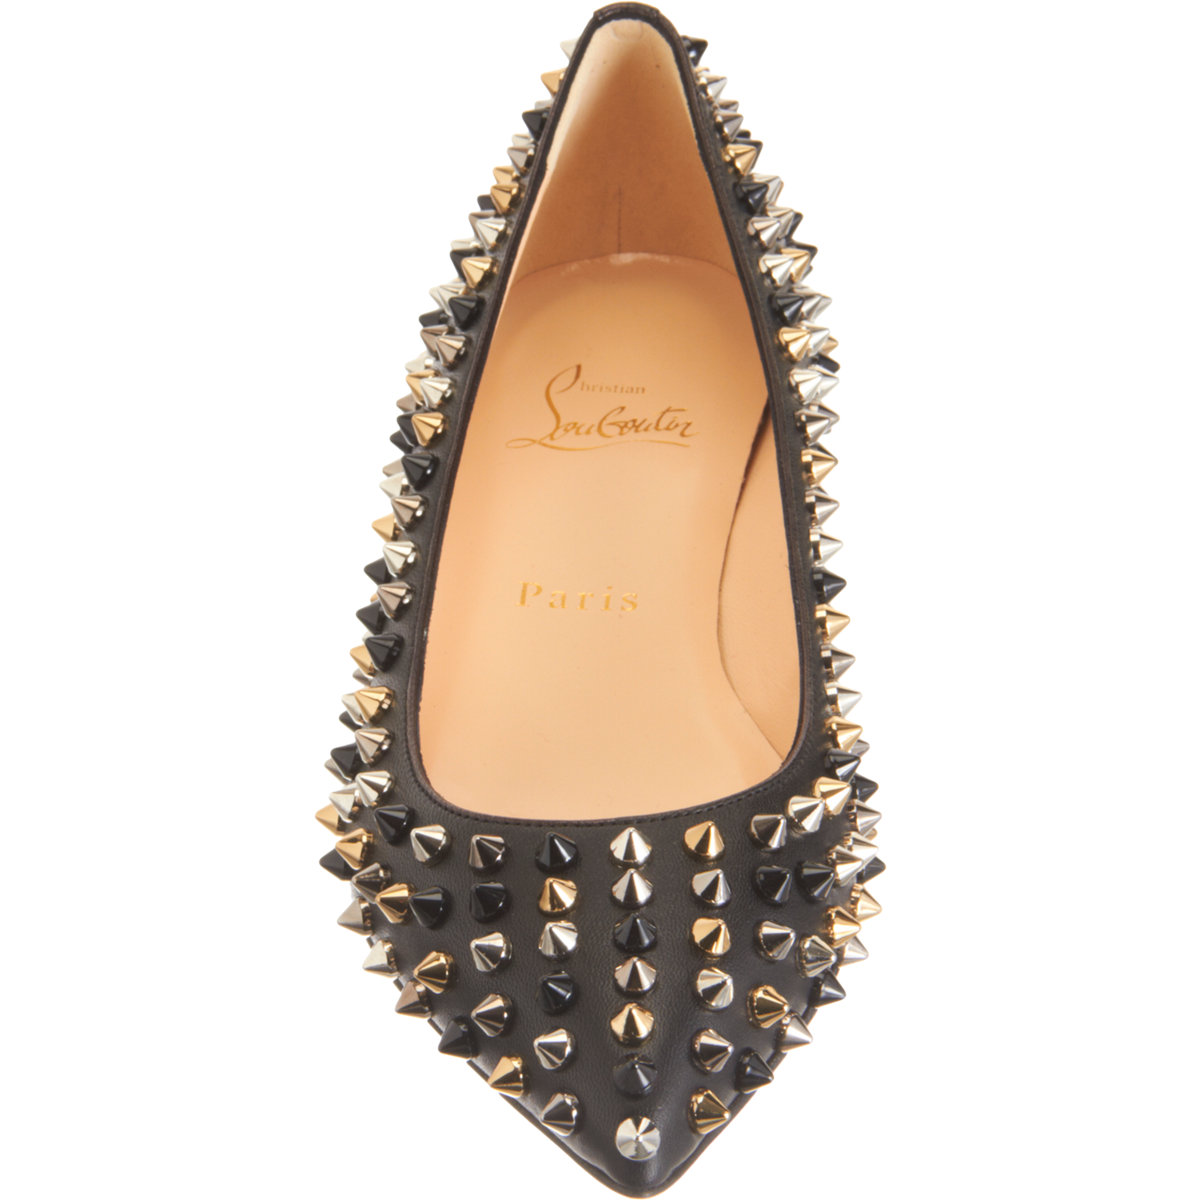 christian louboutin patent leather Pigalle Spikes flats Black ...